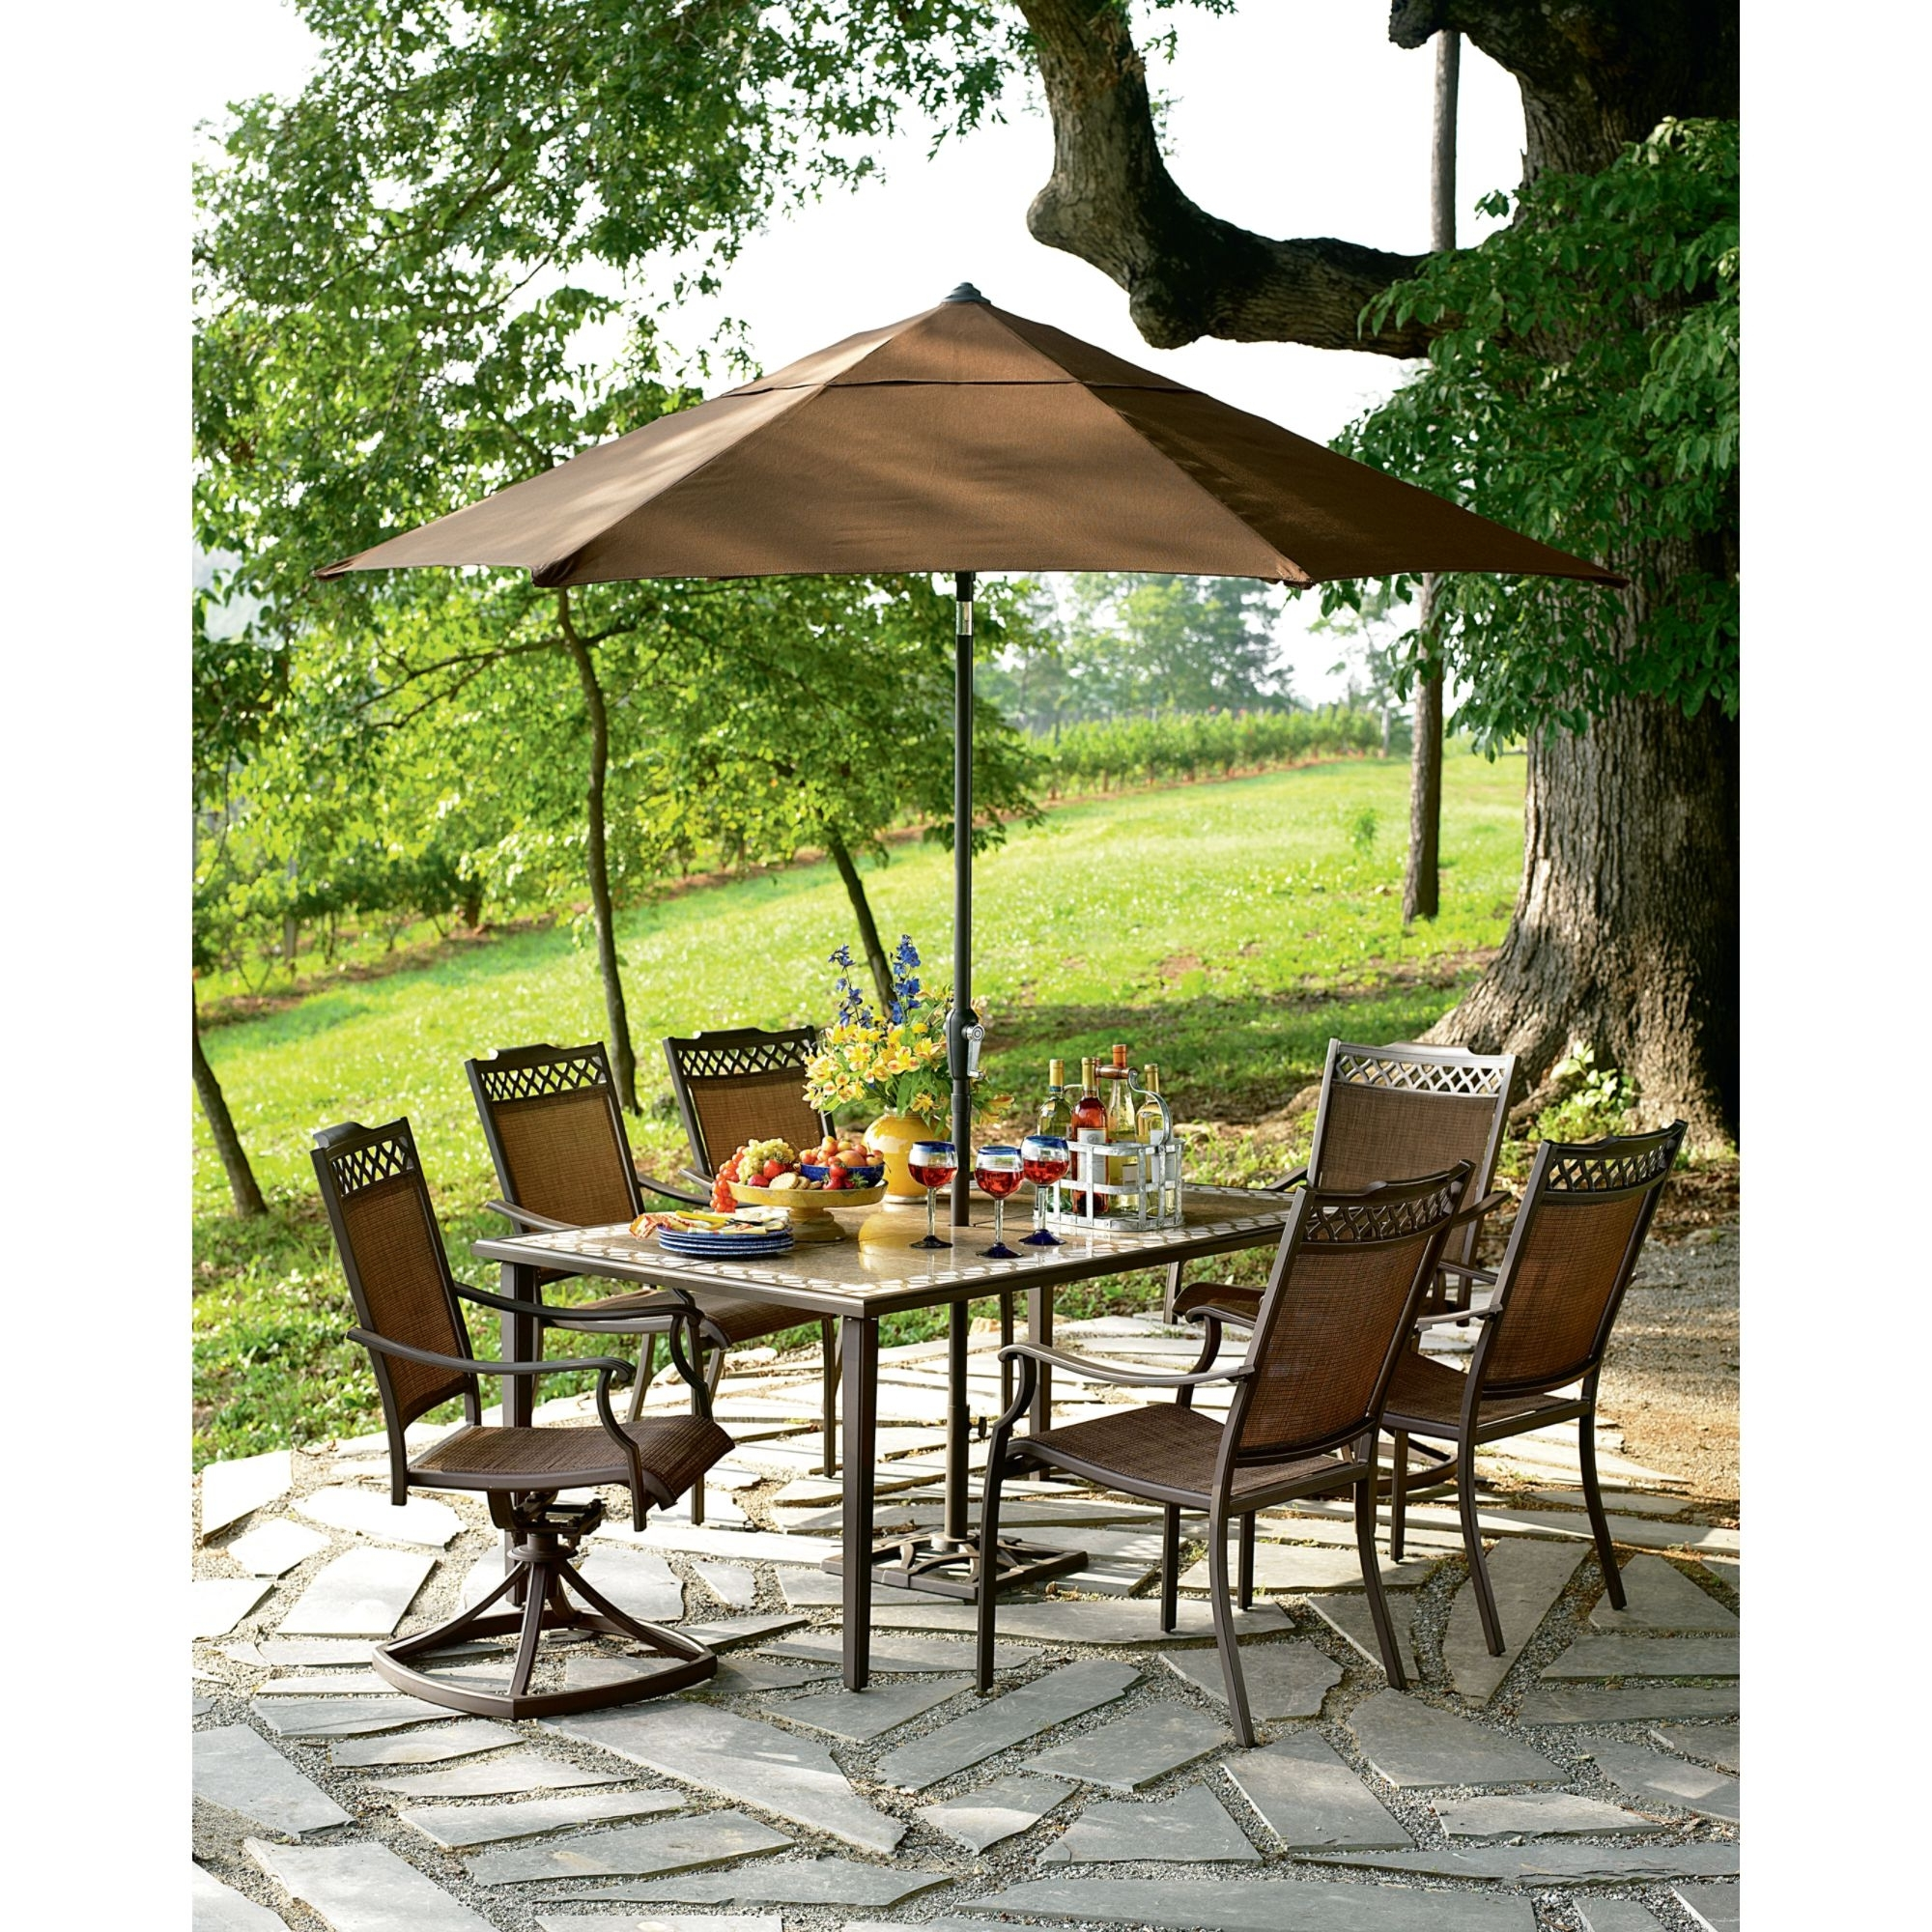 Best And Newest Chaise Lounge Chairs At Sears With Regard To Patios: Enjoying Your Meals Outdoors With Sears Outlet Patio (View 10 of 15)